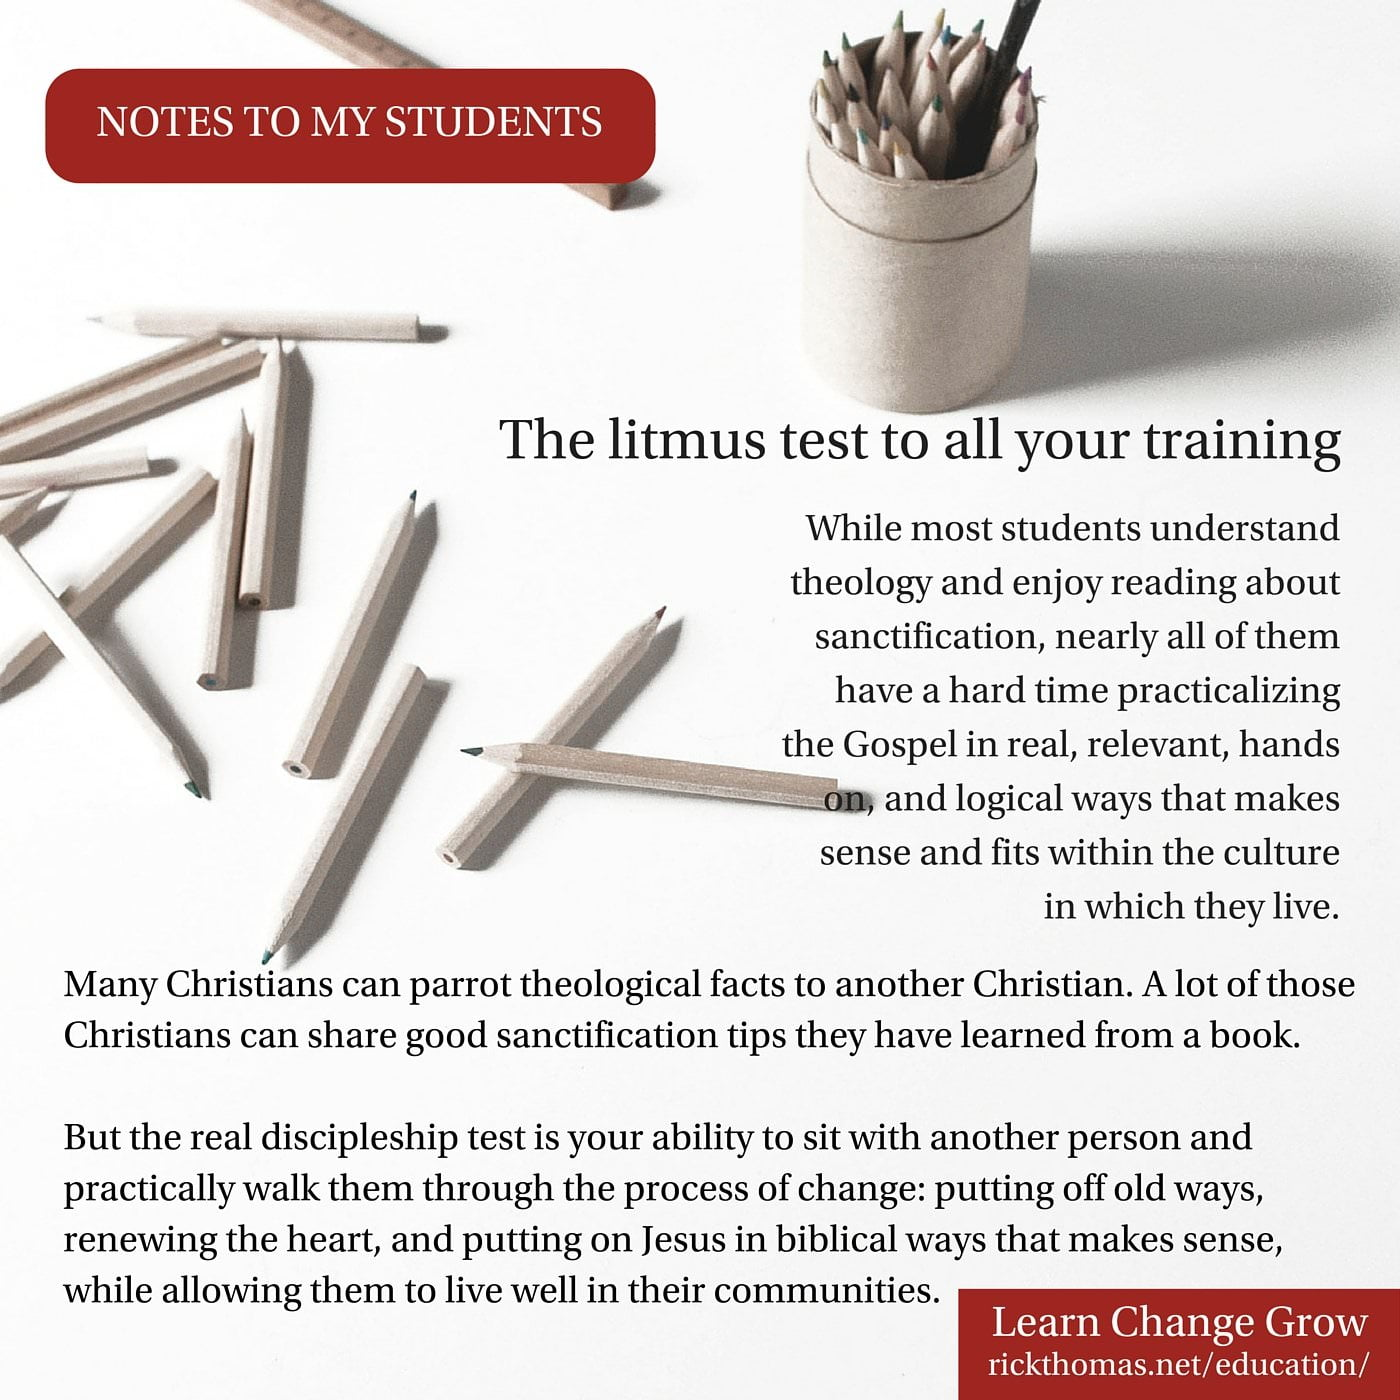 NOTE_ The litmus test to your training